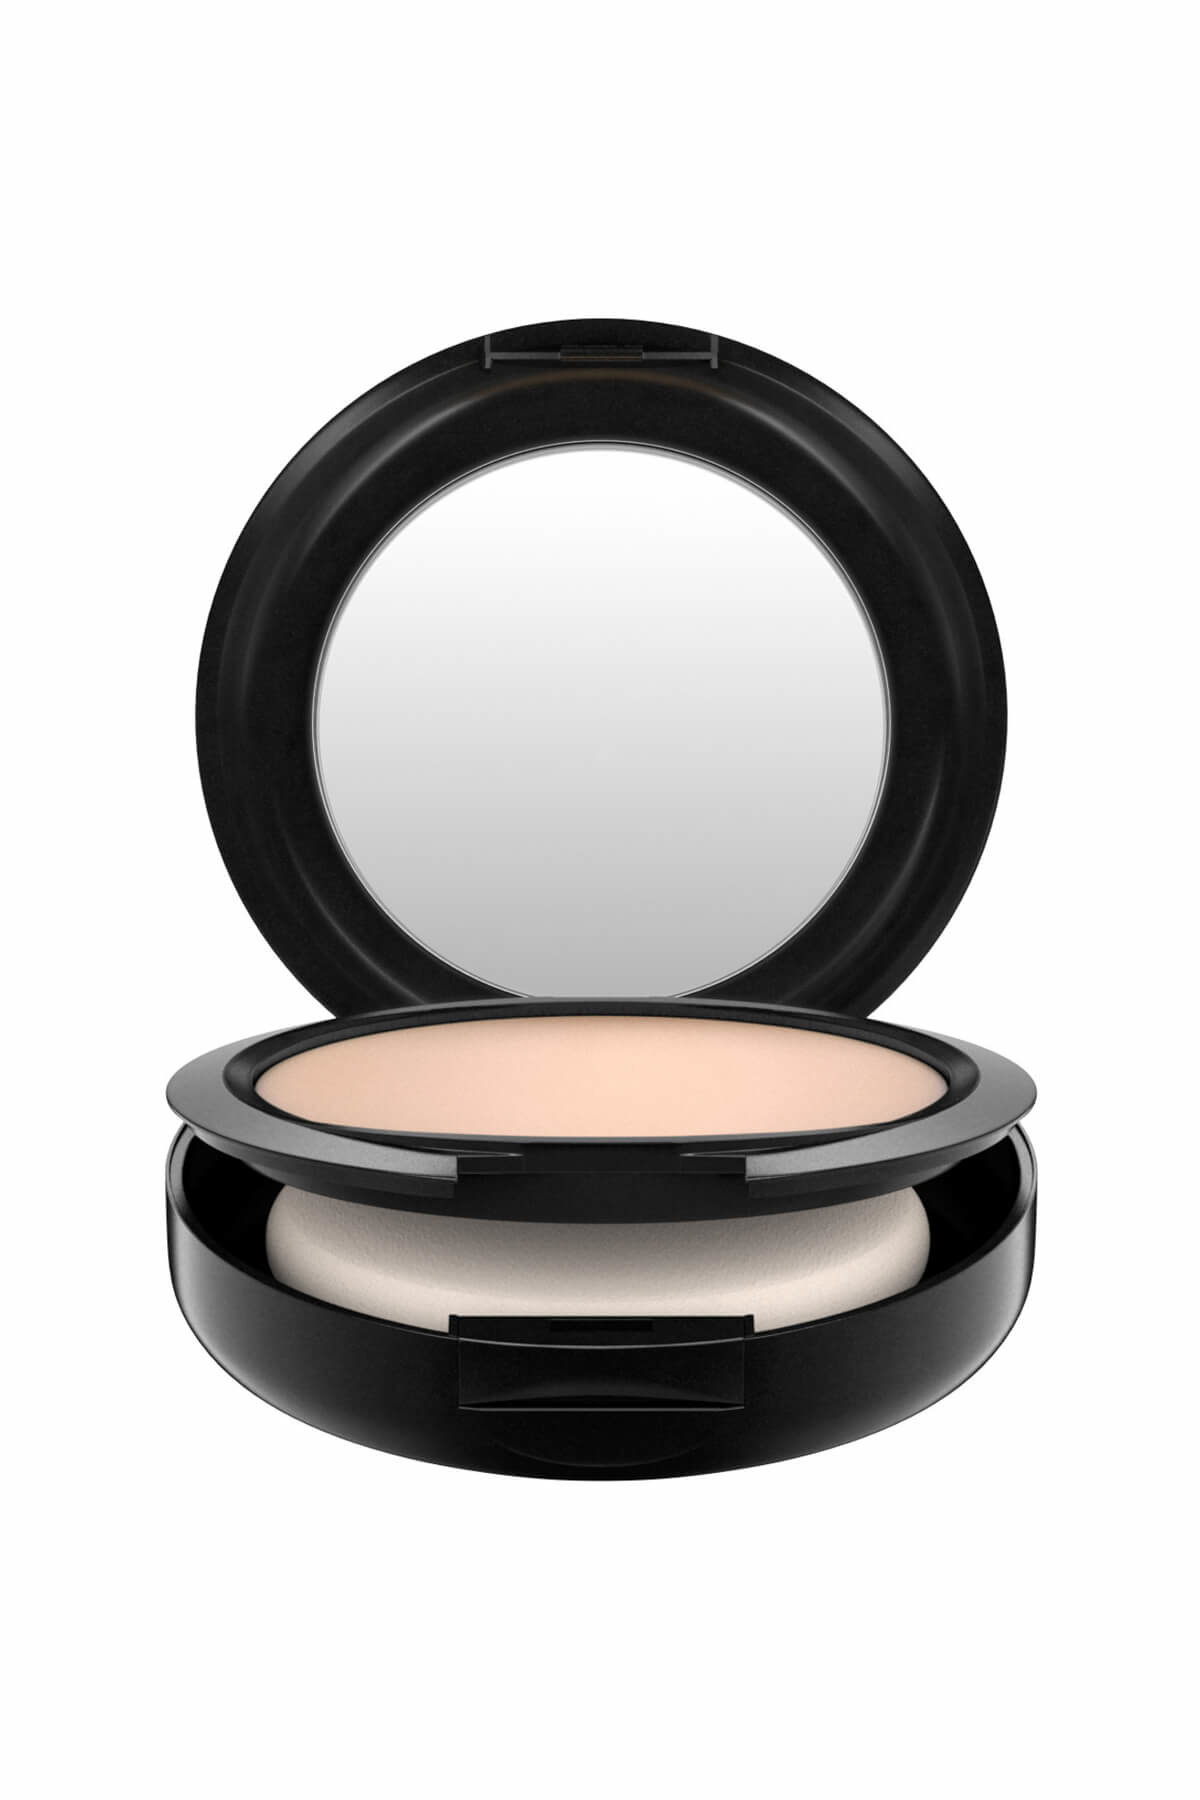 M.A.C Pudra Fondöten - Studio Fix Powder Plus Foundation NW15 15 g 773602010622 2